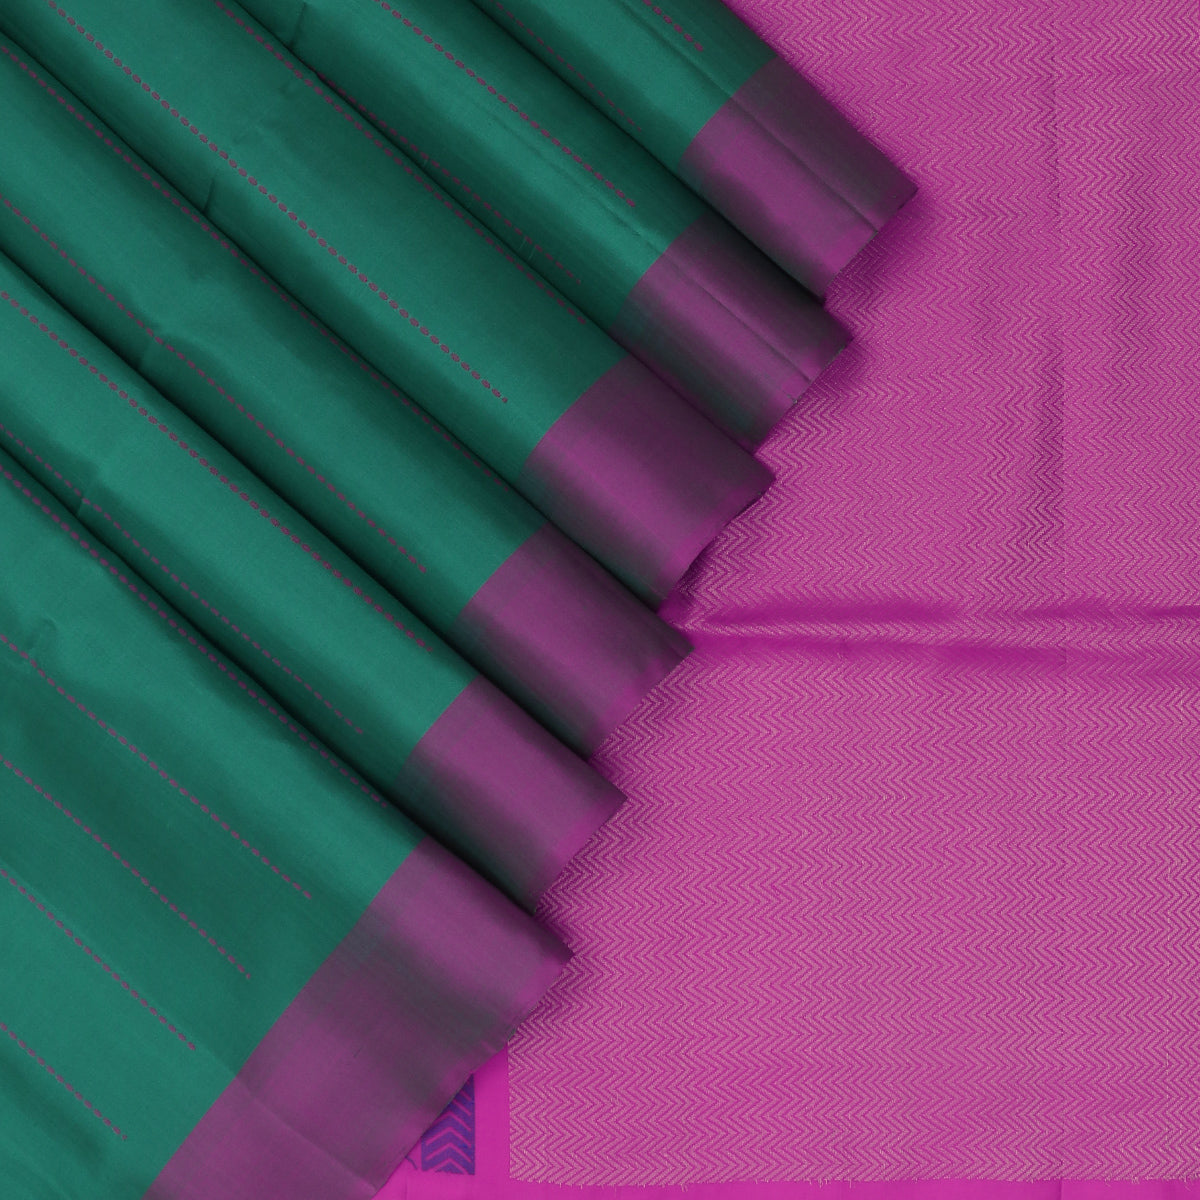 Soft Silk Saree Jungle Green and Pink with Simple Border